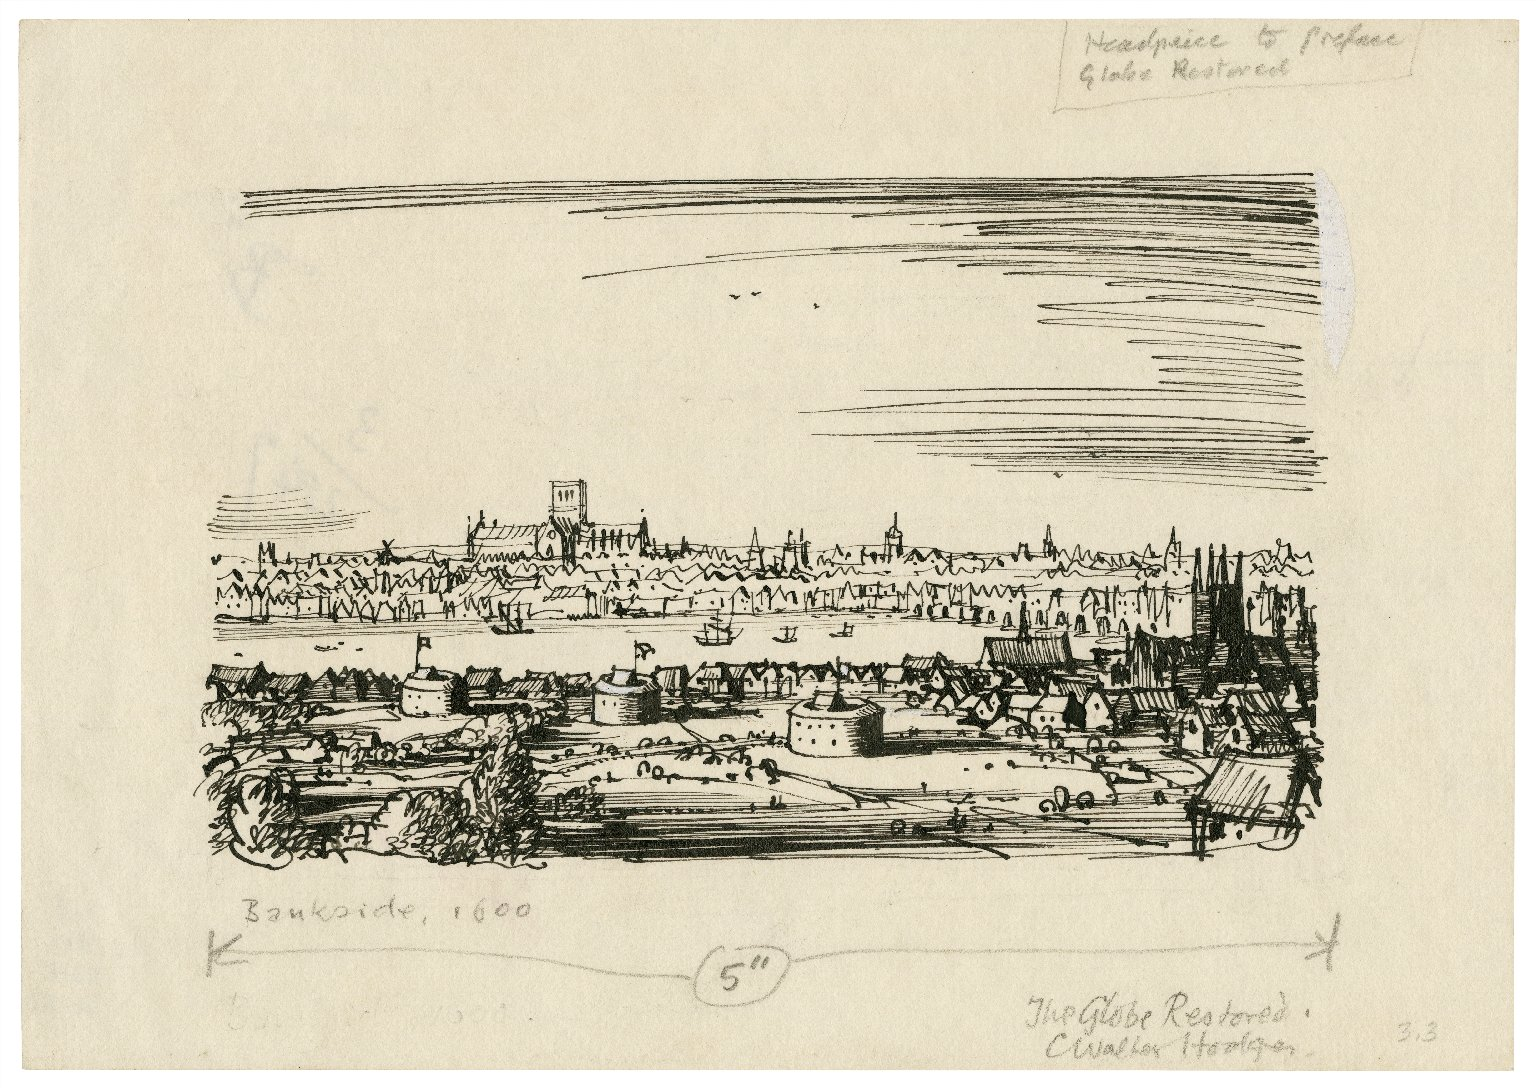 Conjectural view of Bankside by C. Walter Hodges. Image courtesy of the Folger Digital Image Collection.